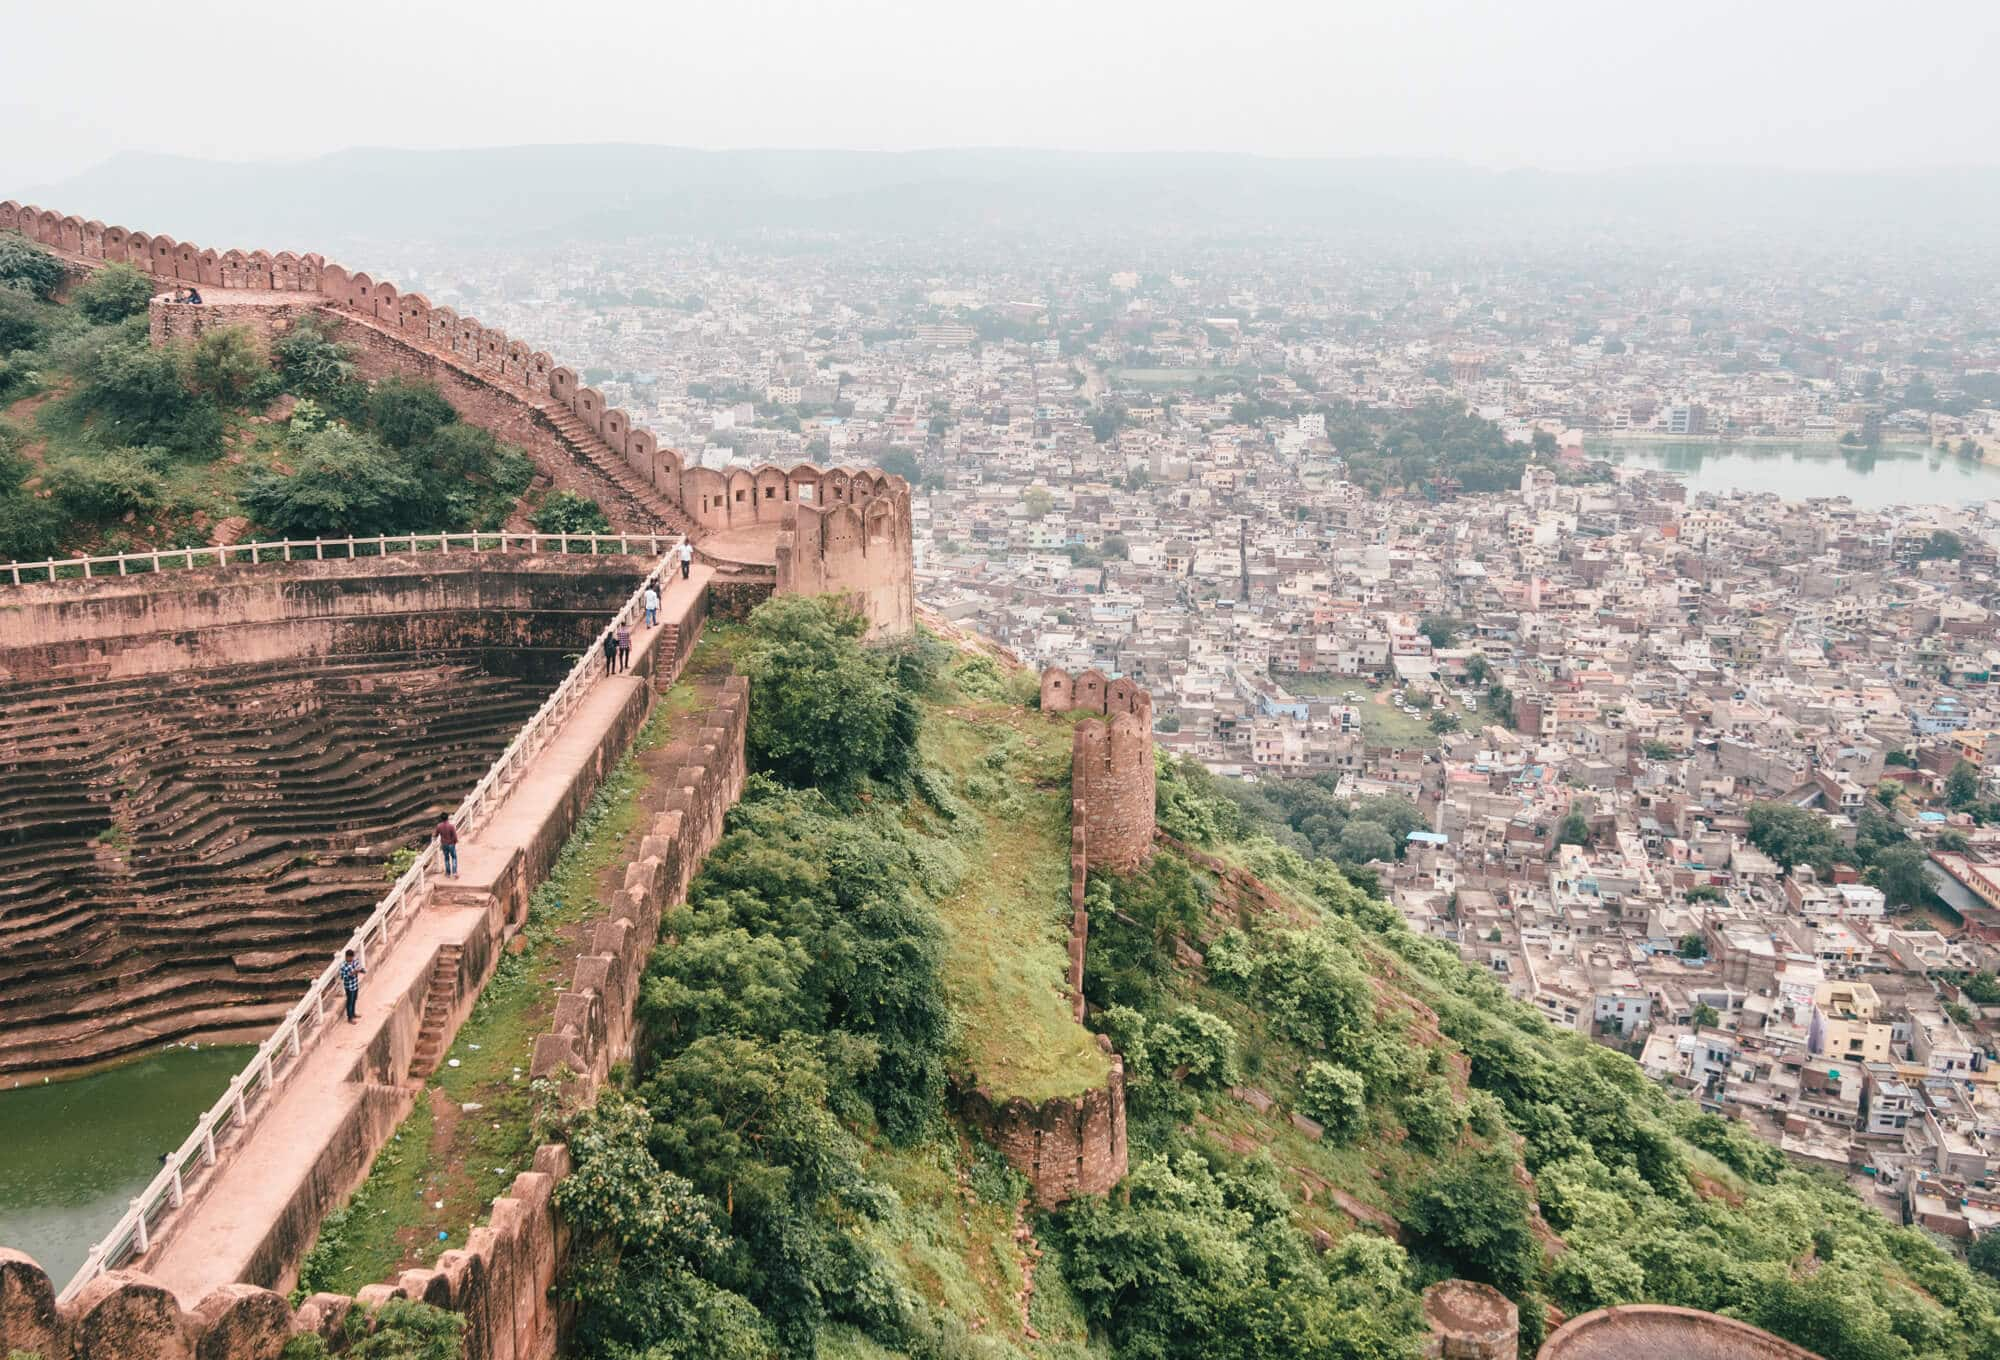 A guide to Nahargarh Fort - The best sunset view point in Jaipur, India. How to get the best sunset photos at #nahargarhfort #jaipur #india